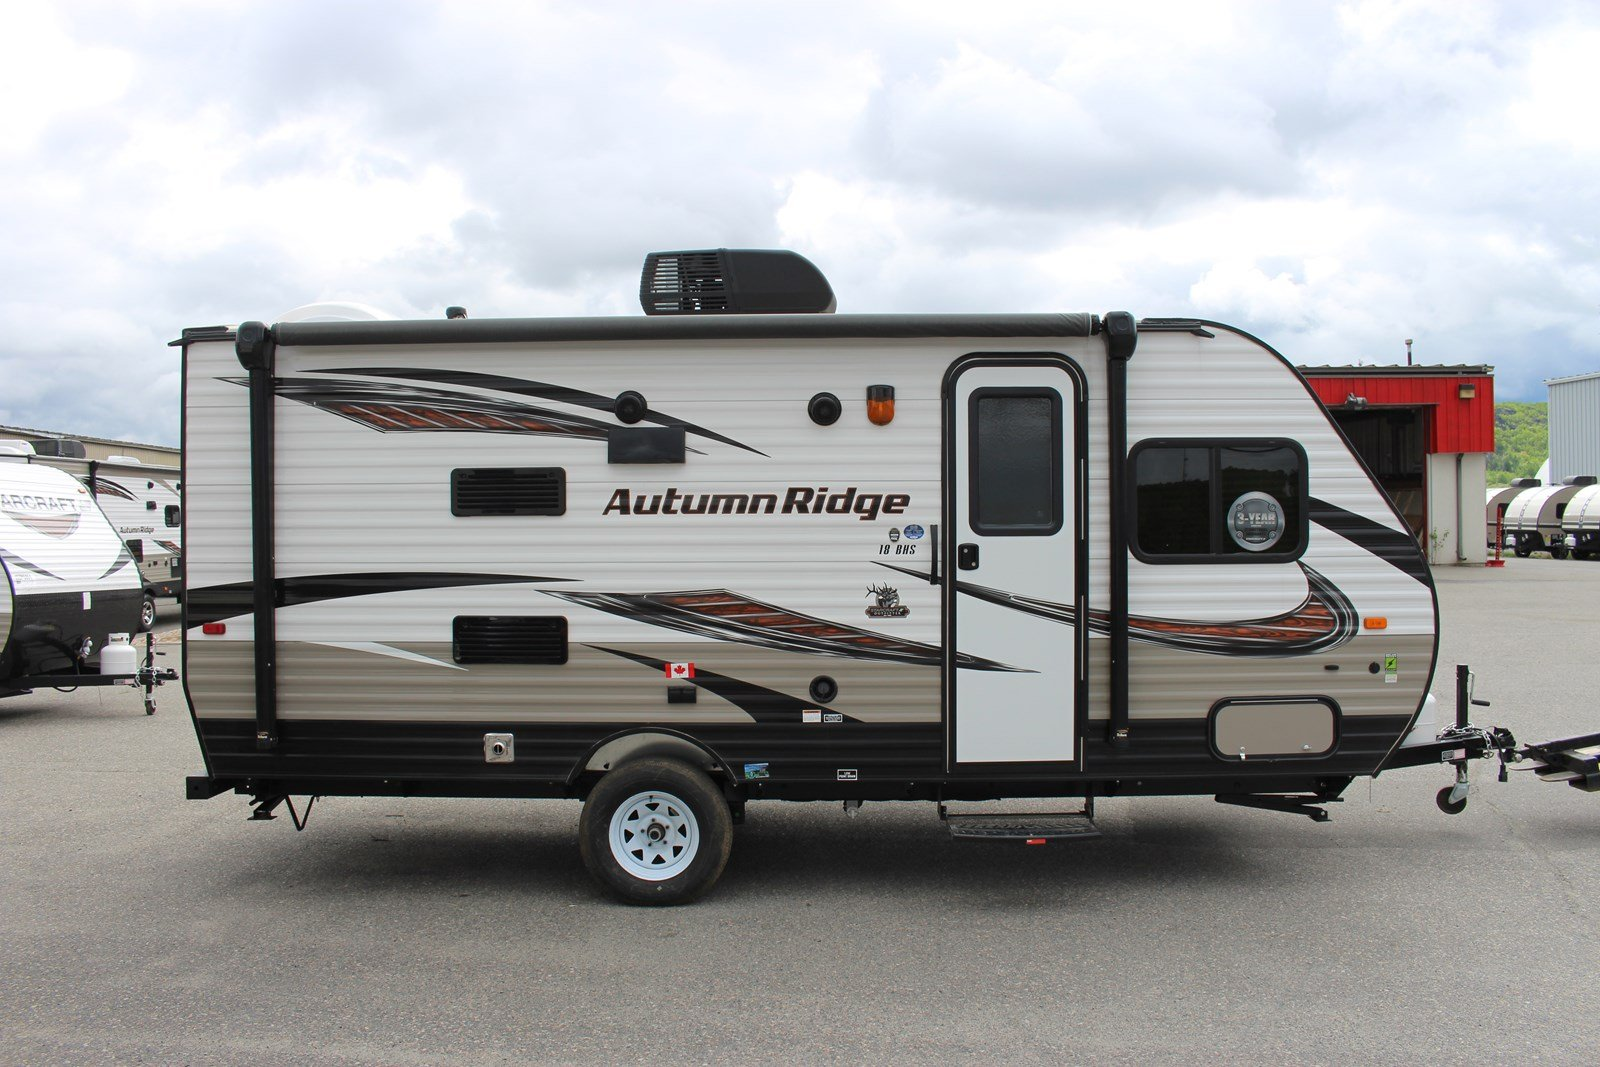 New 2018 Starcraft AUTUMN RIDGE OUTFITTER 18BHS